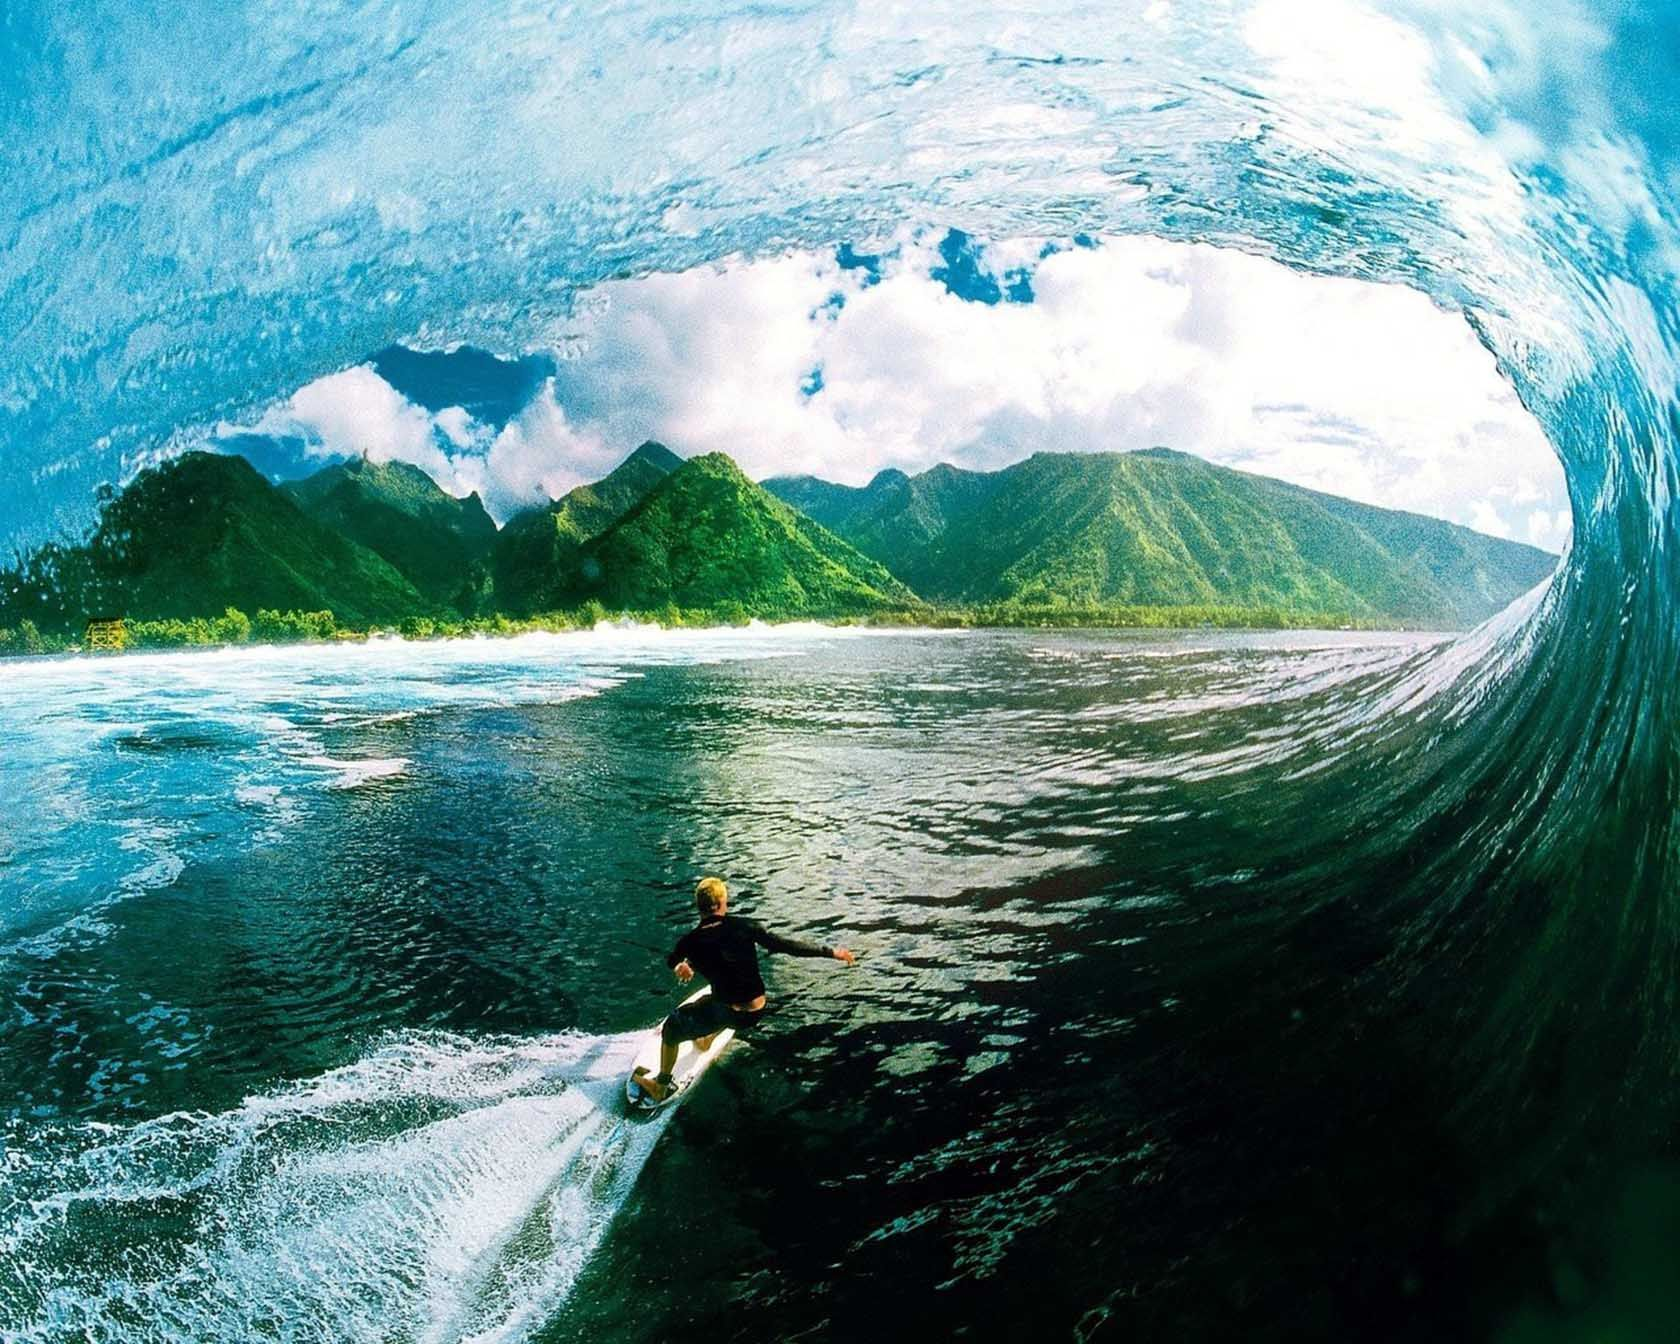 surfing wallpaper | outdoor sports | pinterest | wallpaper, surf and